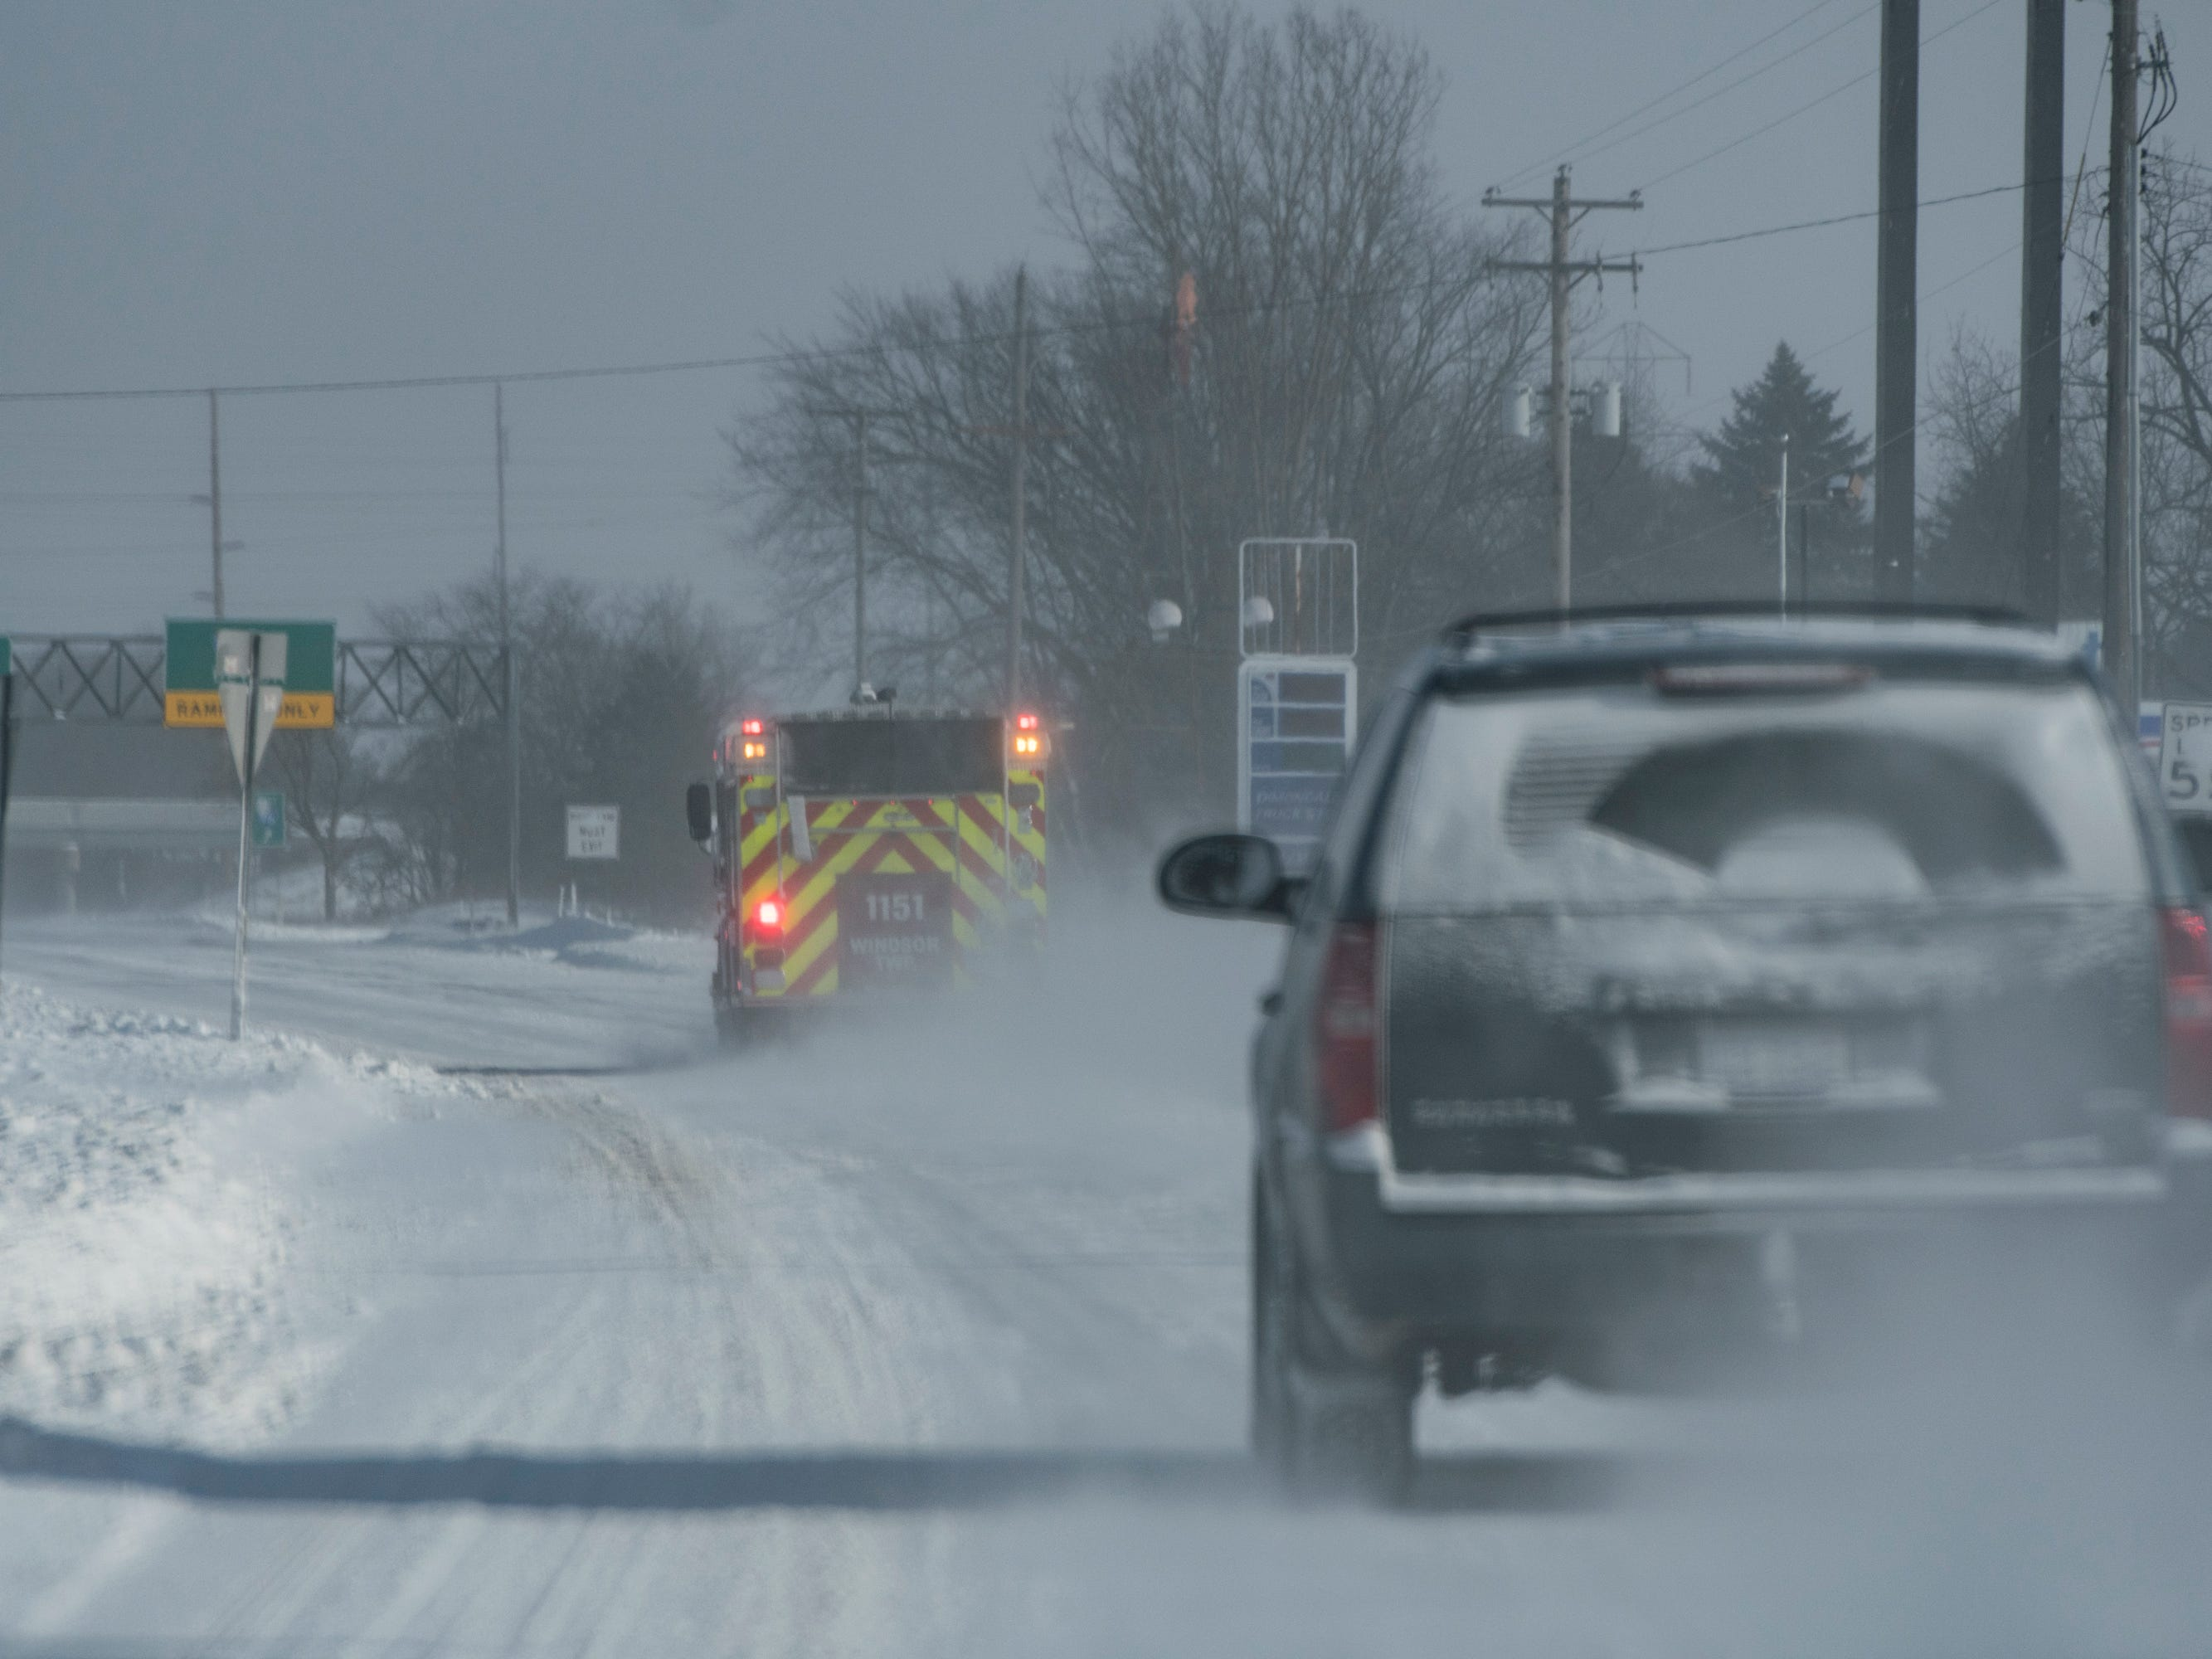 A firetruck heads east on Old Lansing Rd. near Dimondale,  Wednesday, Jan. 30, 2019.  [USA Today Network/Matthew Dae Smith/Lansing State Journal]